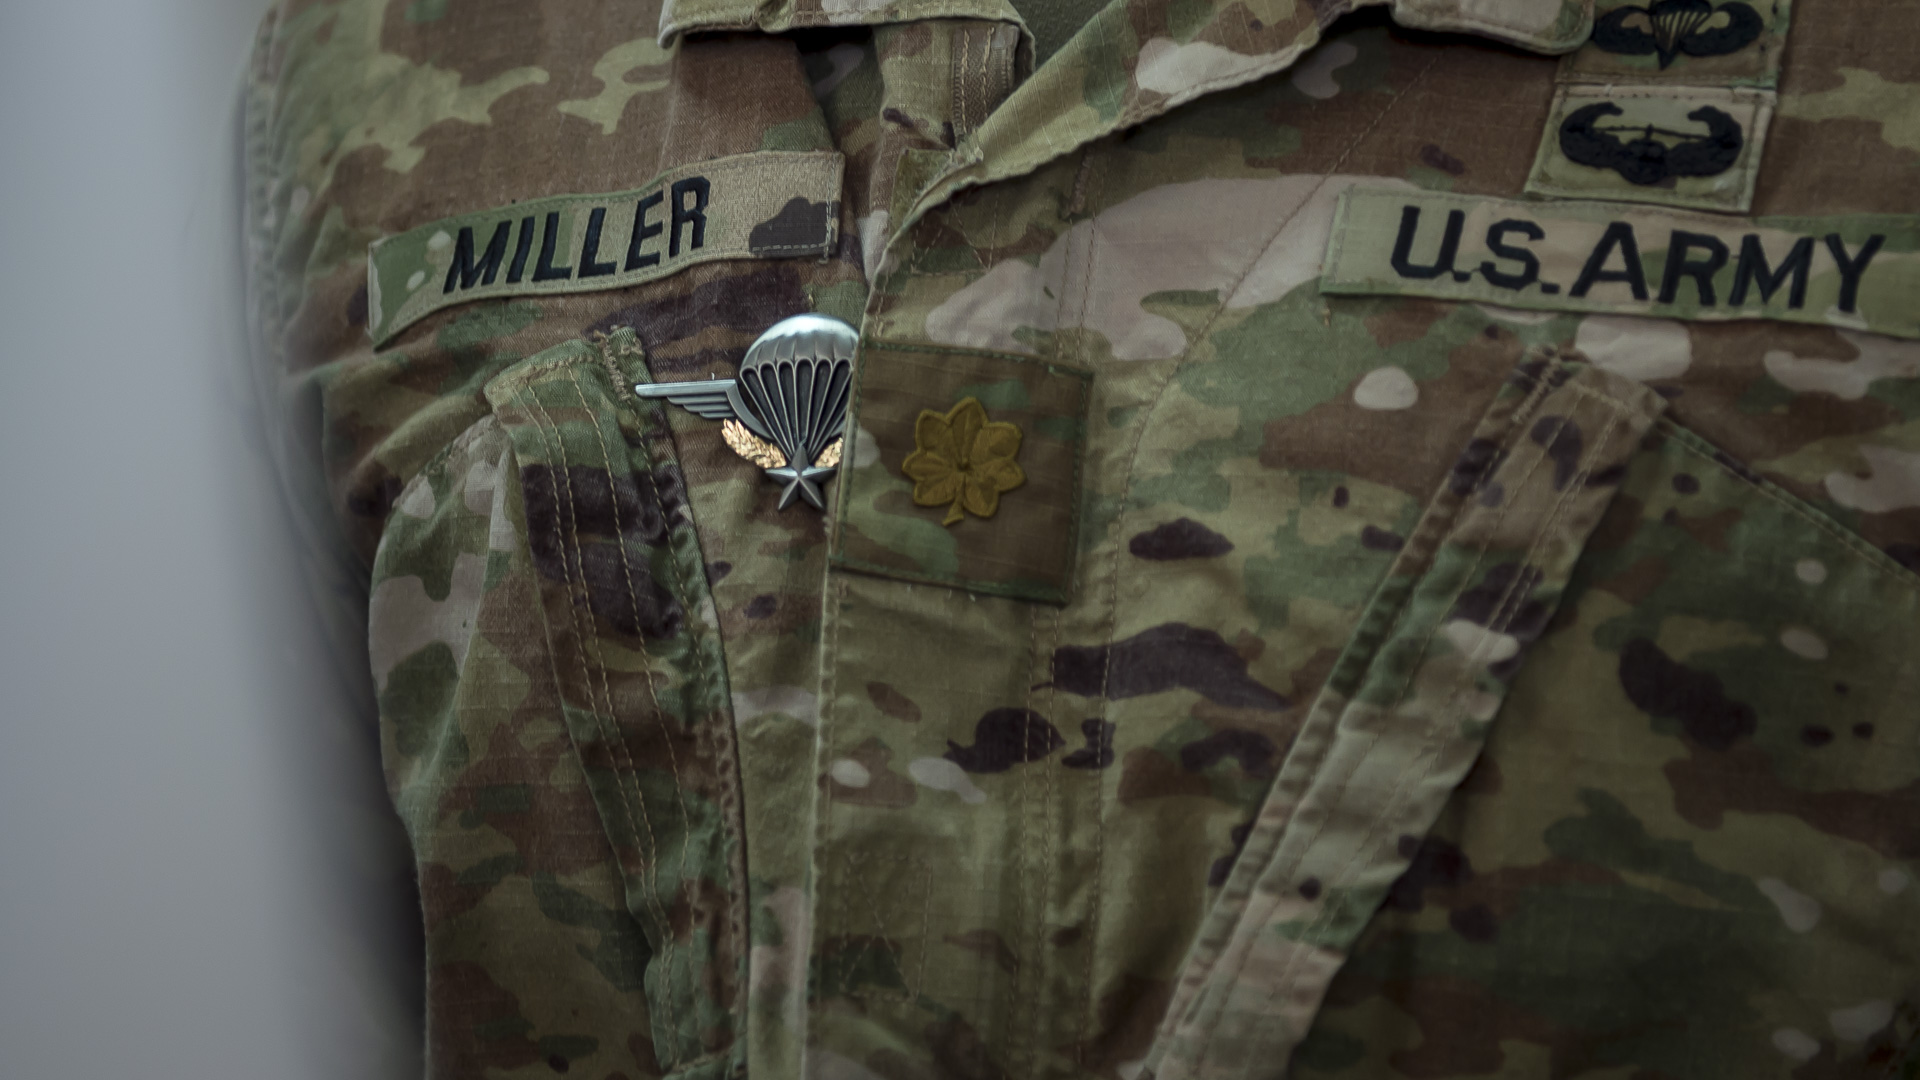 U.S. Army Maj. Marcus Miller, special technical operations chief, assigned to Combined Joint Task Force-Horn of Africa stands at attention after being presented his French Jump Wings at a ceremony on the French Forces Djibouti Base, Sept. 29, 2019. Miller was one of thirteen Americans who participated in the jump, which also included French, Italian, and Djiboutian servicemembers. (U.S. Air Force Photo by Senior Airman Codie Trimble)